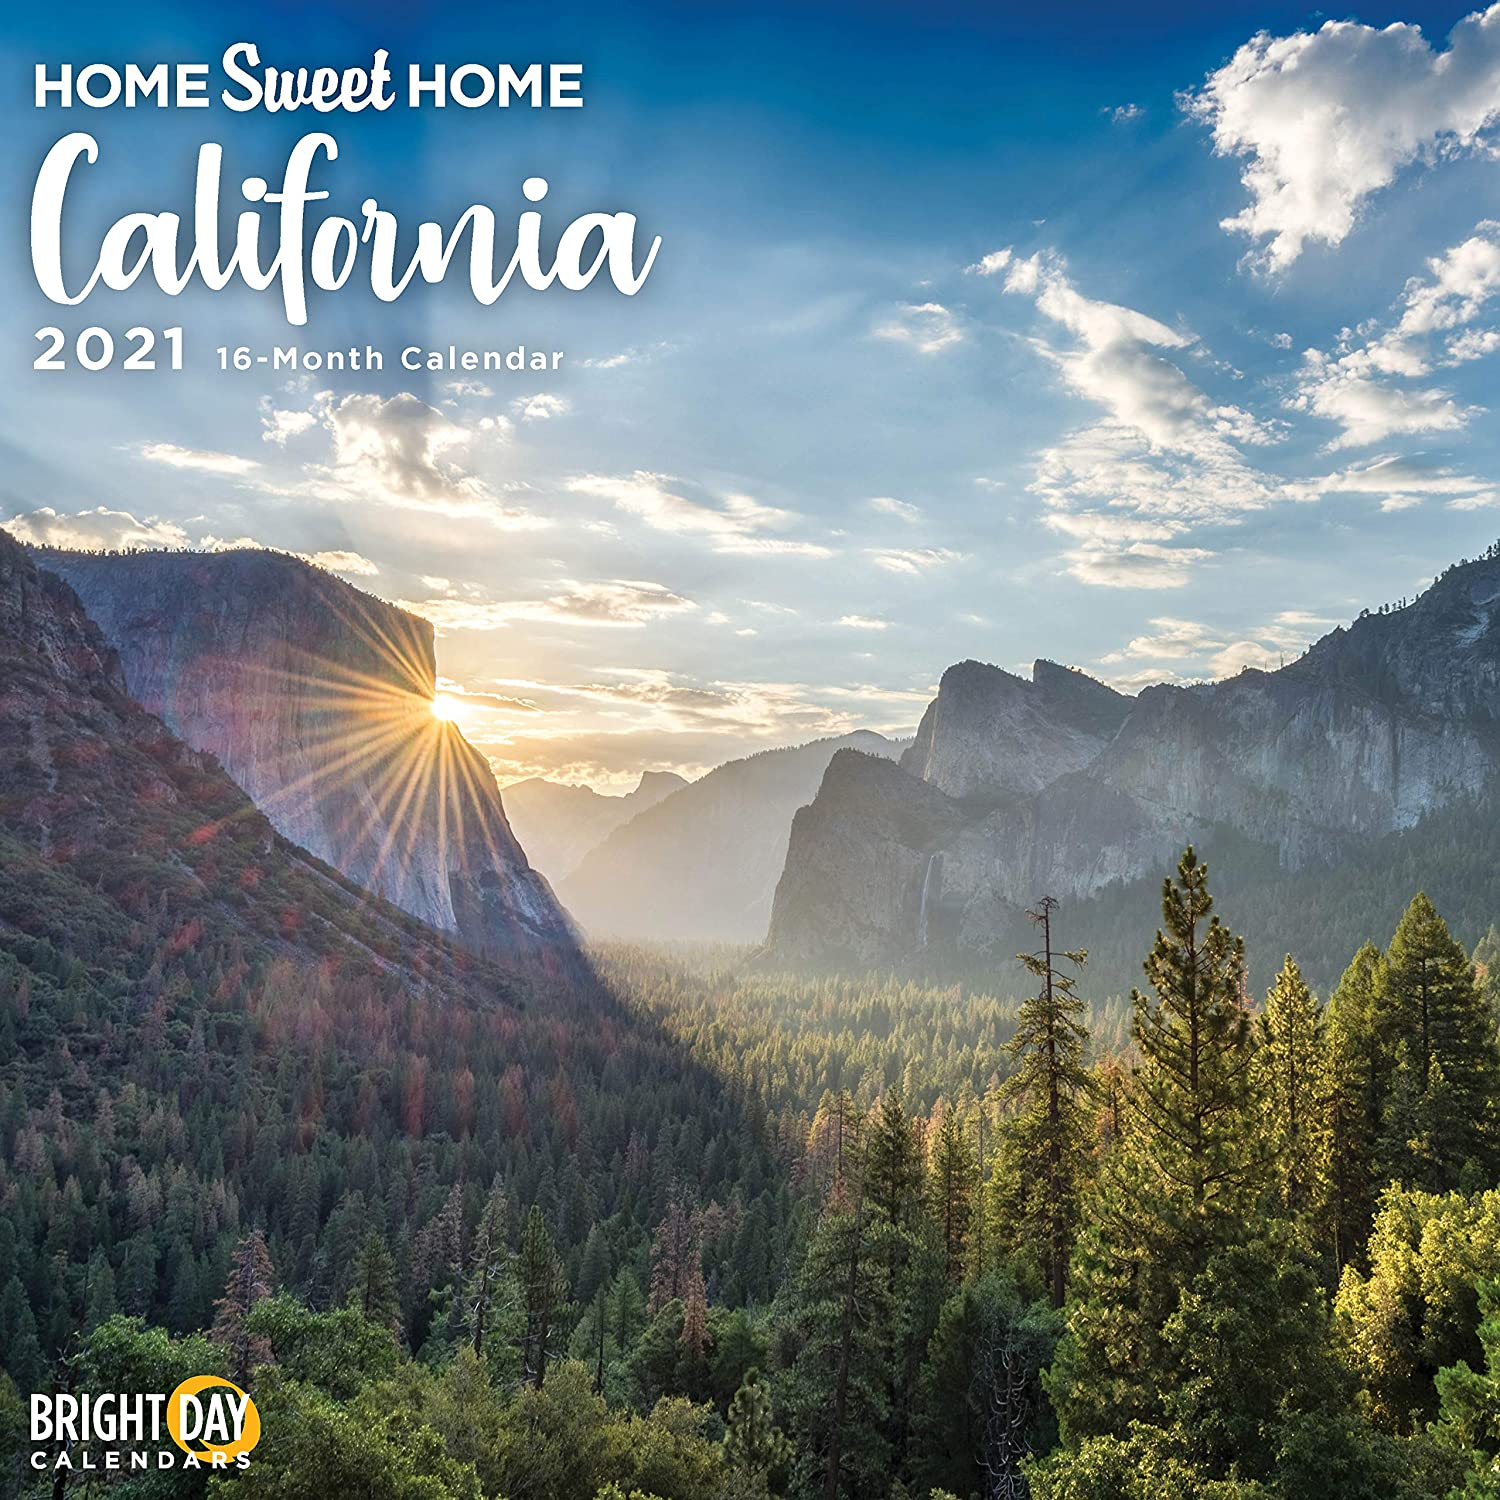 2021 Home Sweet Home California Wall Calendar by Bright Day, 12 x 12 Inch, Los Angeles Hollywood Beaches USA Hometown Travel Destination